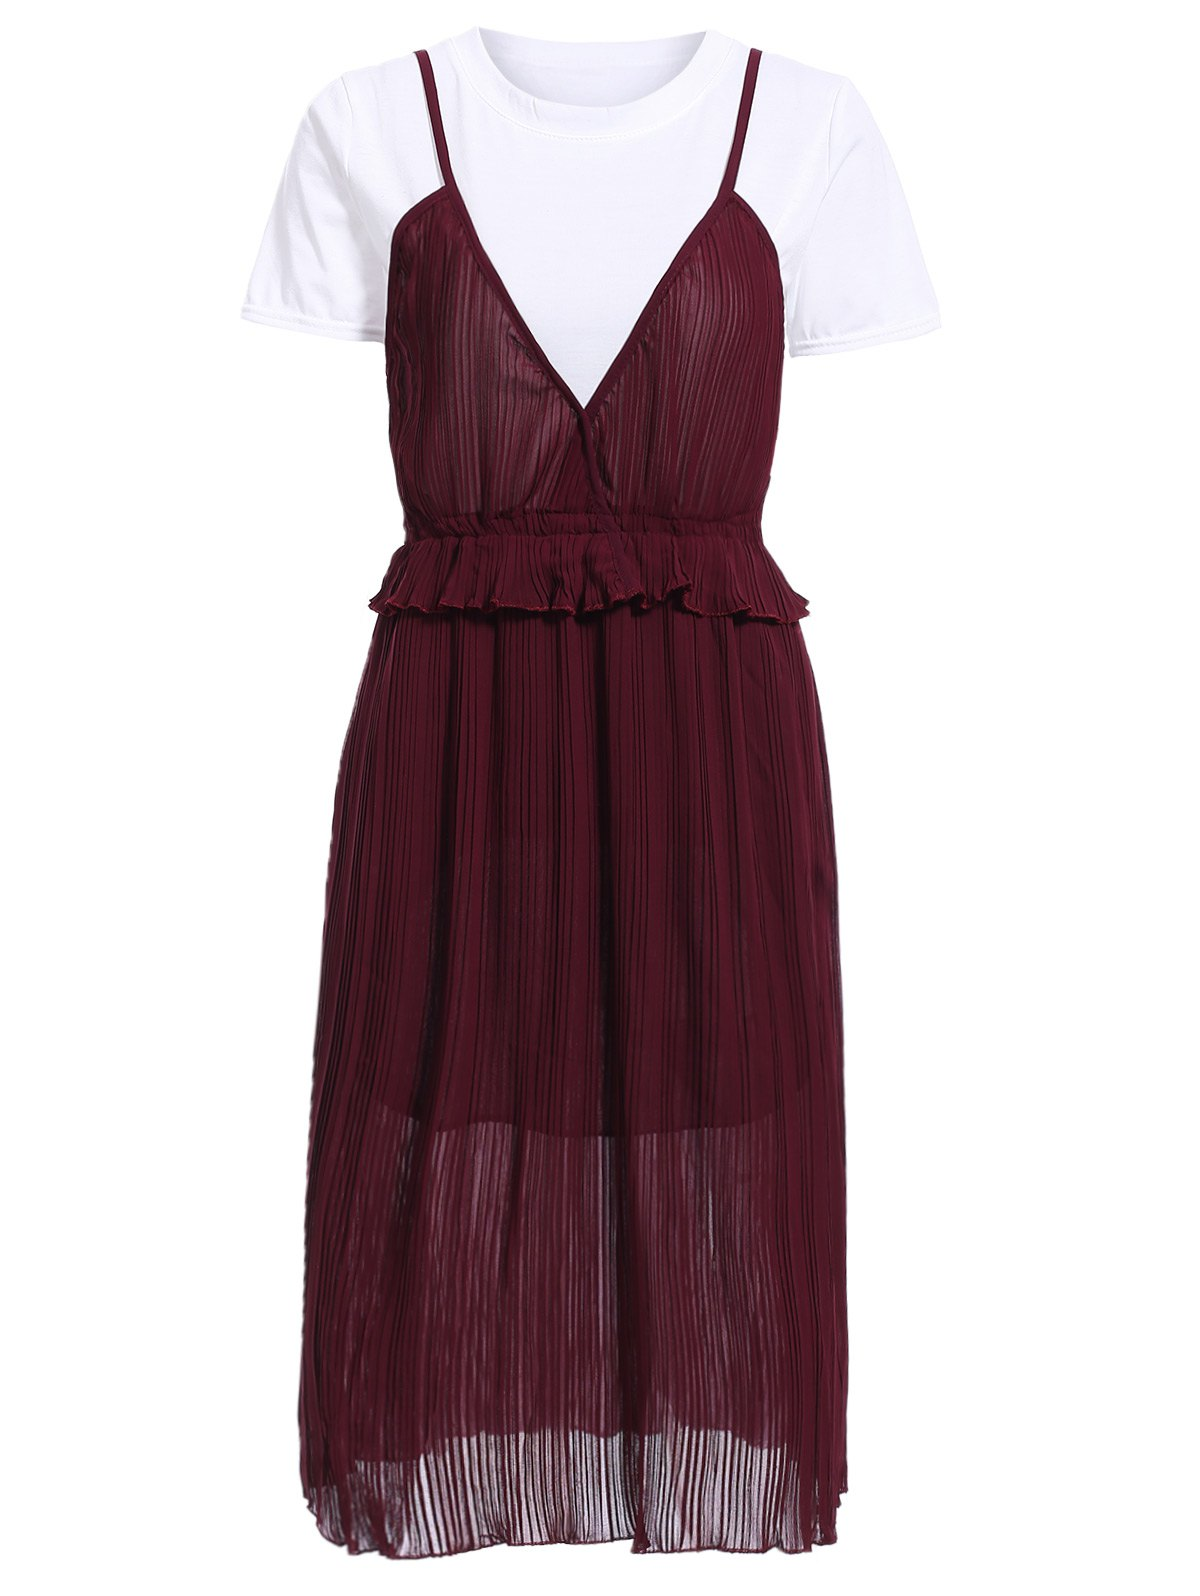 Stunning Women's Solid Color T-Shirt and Pleated Spaghetti Straps Dress Set women s stunning solid color t shirt and pleated spaghetti straps dress set